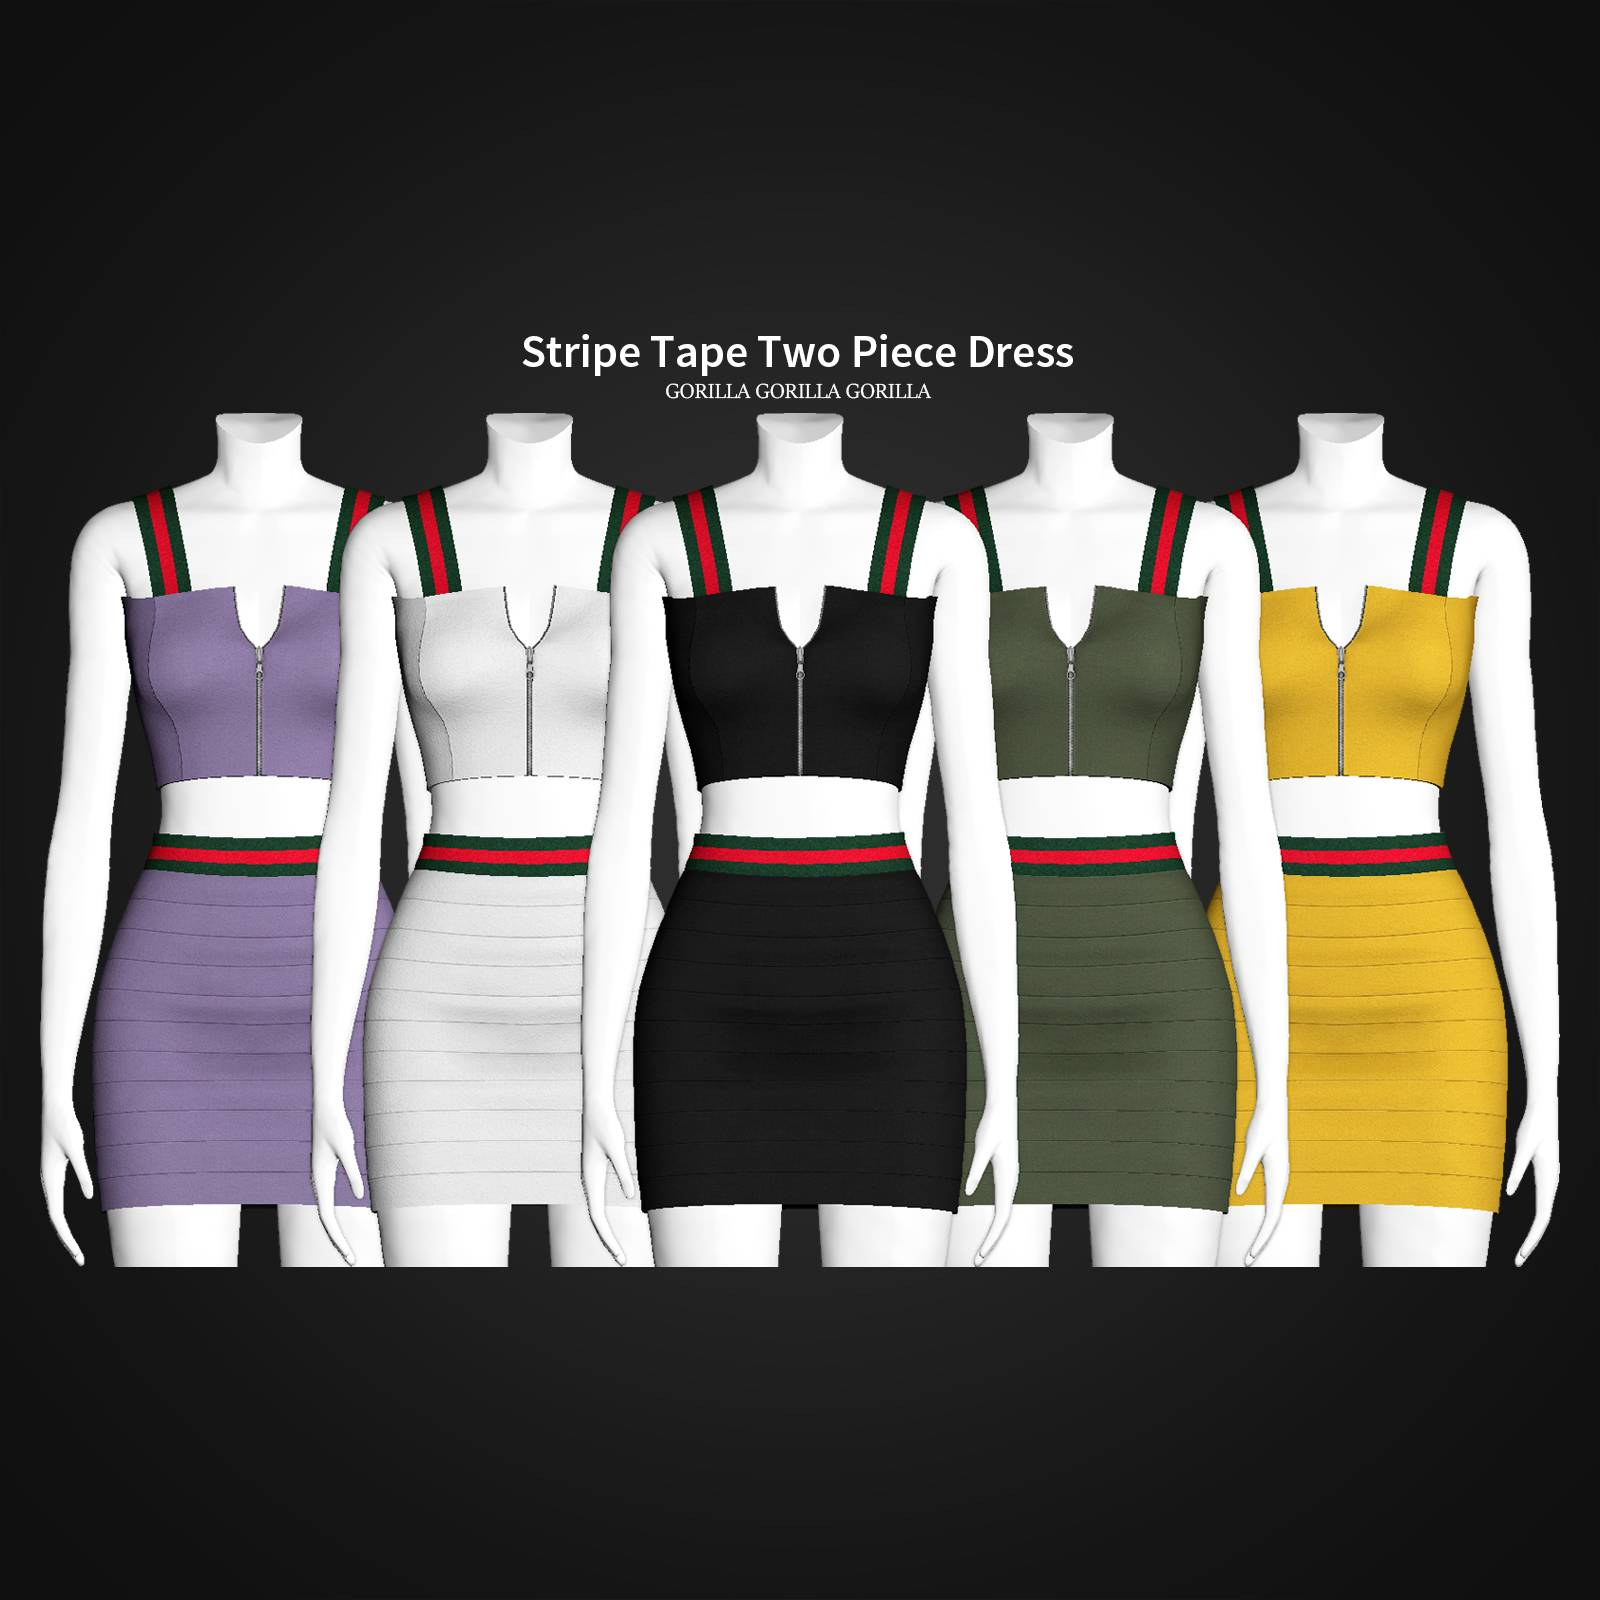 Топ и юбка - Stripe Tape Two Piece Dress